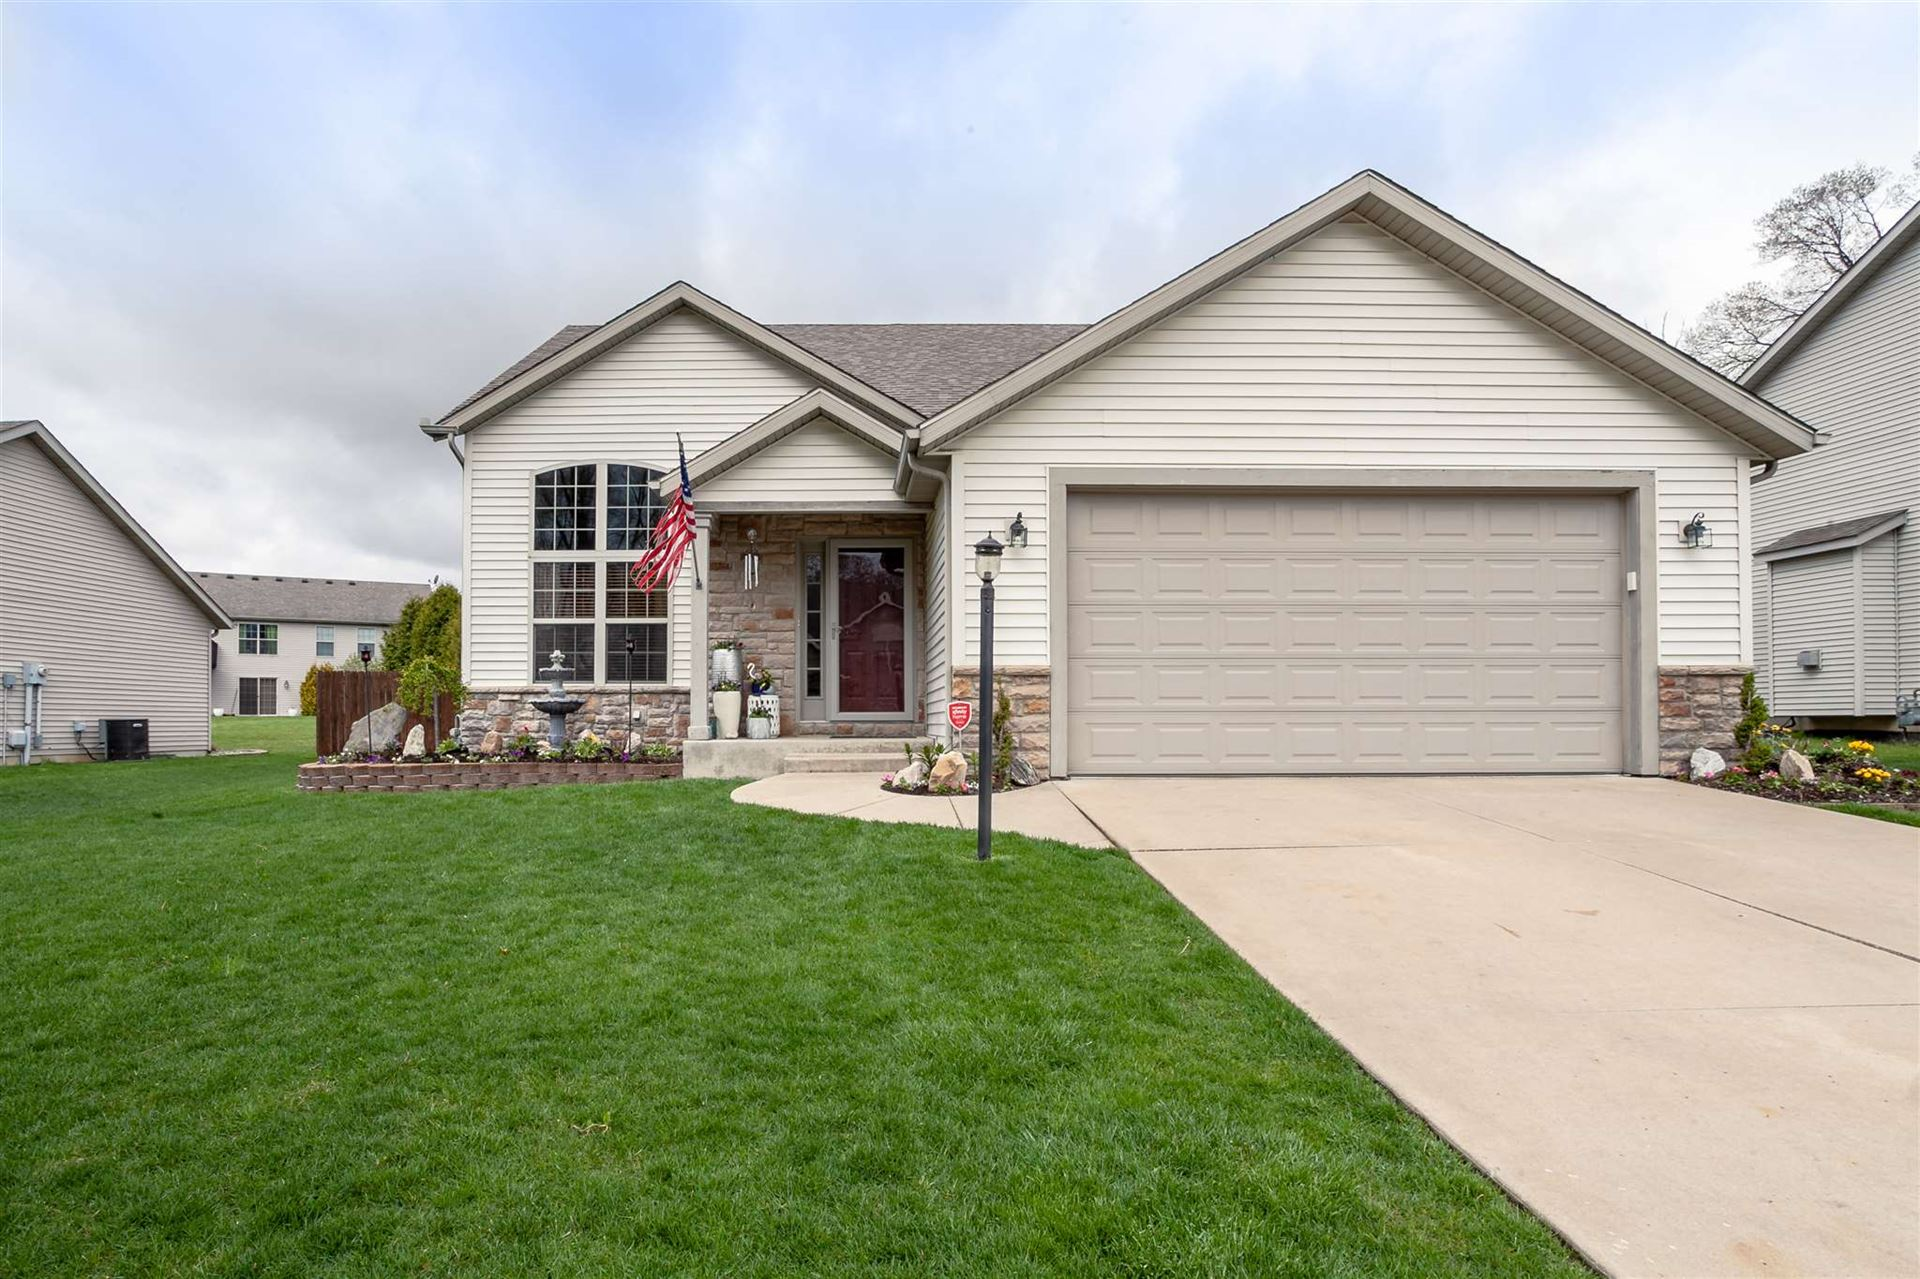 53181 Grassy Knoll Drive, South Bend, IN 46628 - #: 202010397